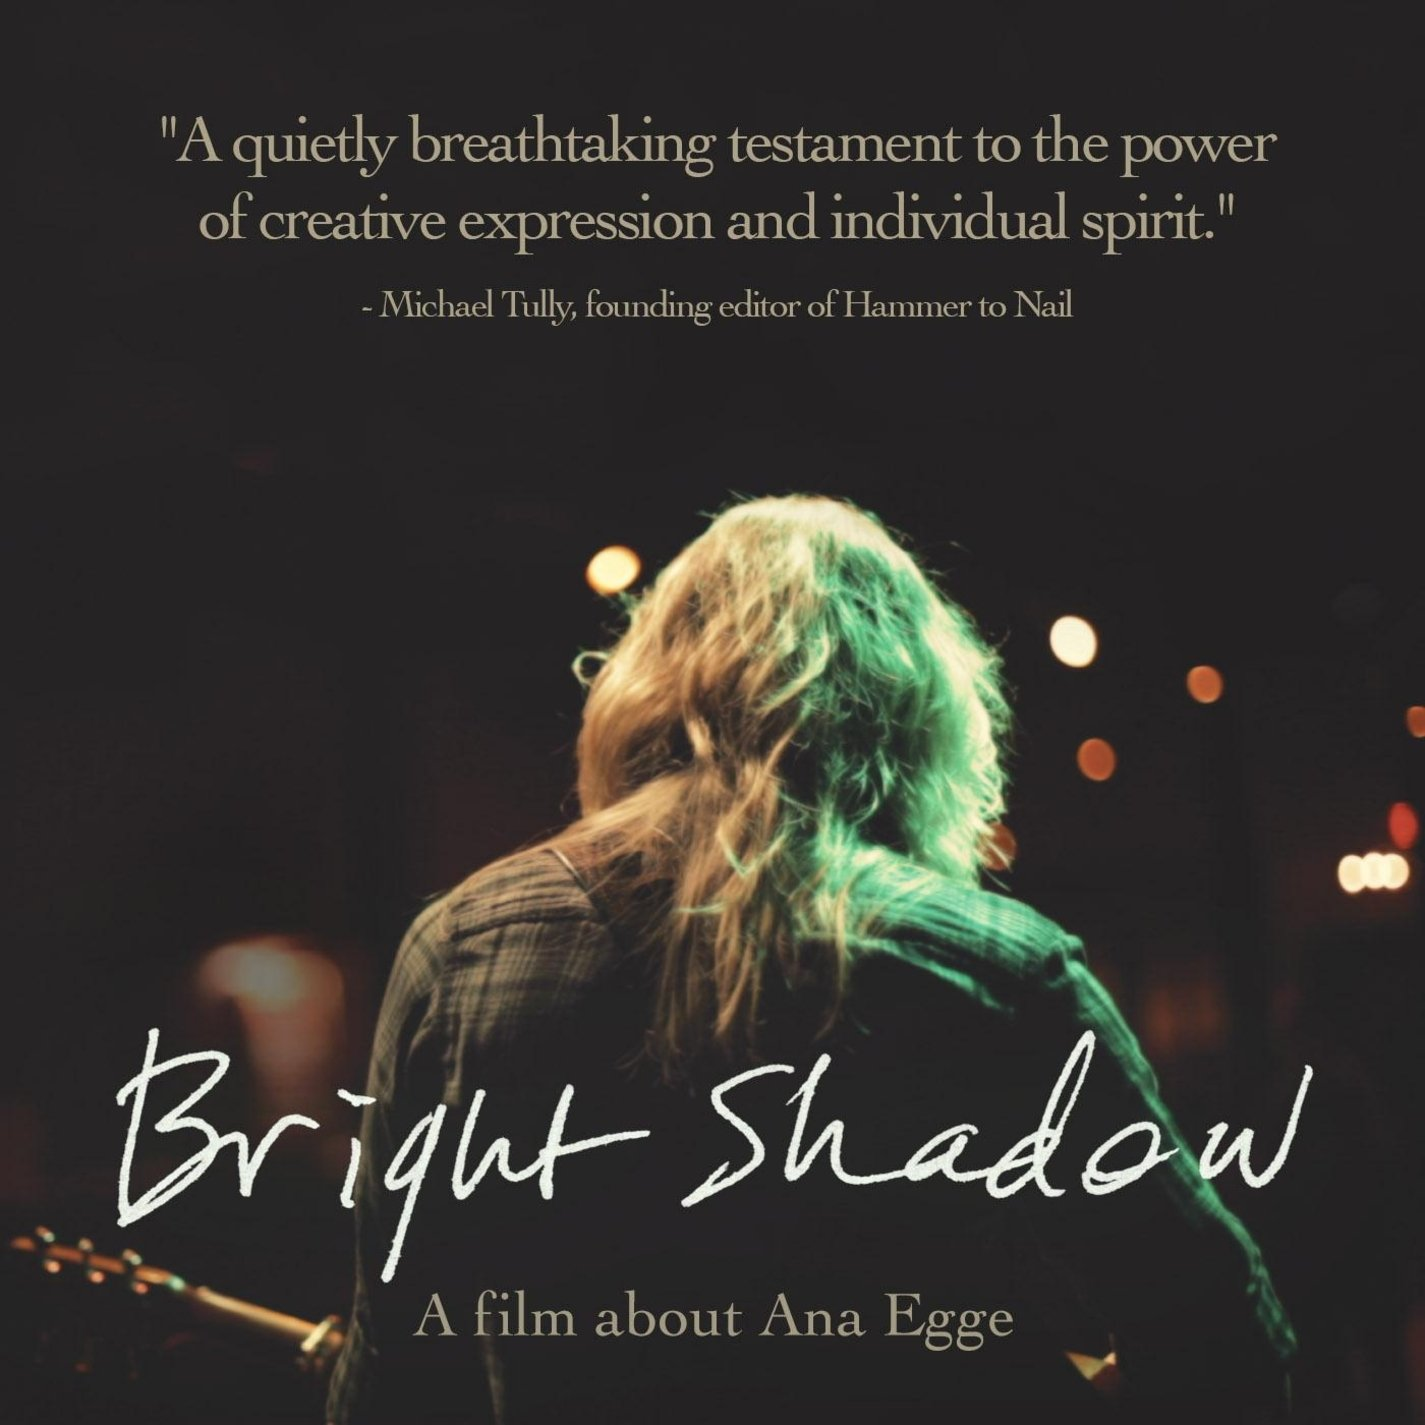 DVD : LYDA, JESSE - Bright Shadow Documentary, A Film About Ana Egge (DVD)